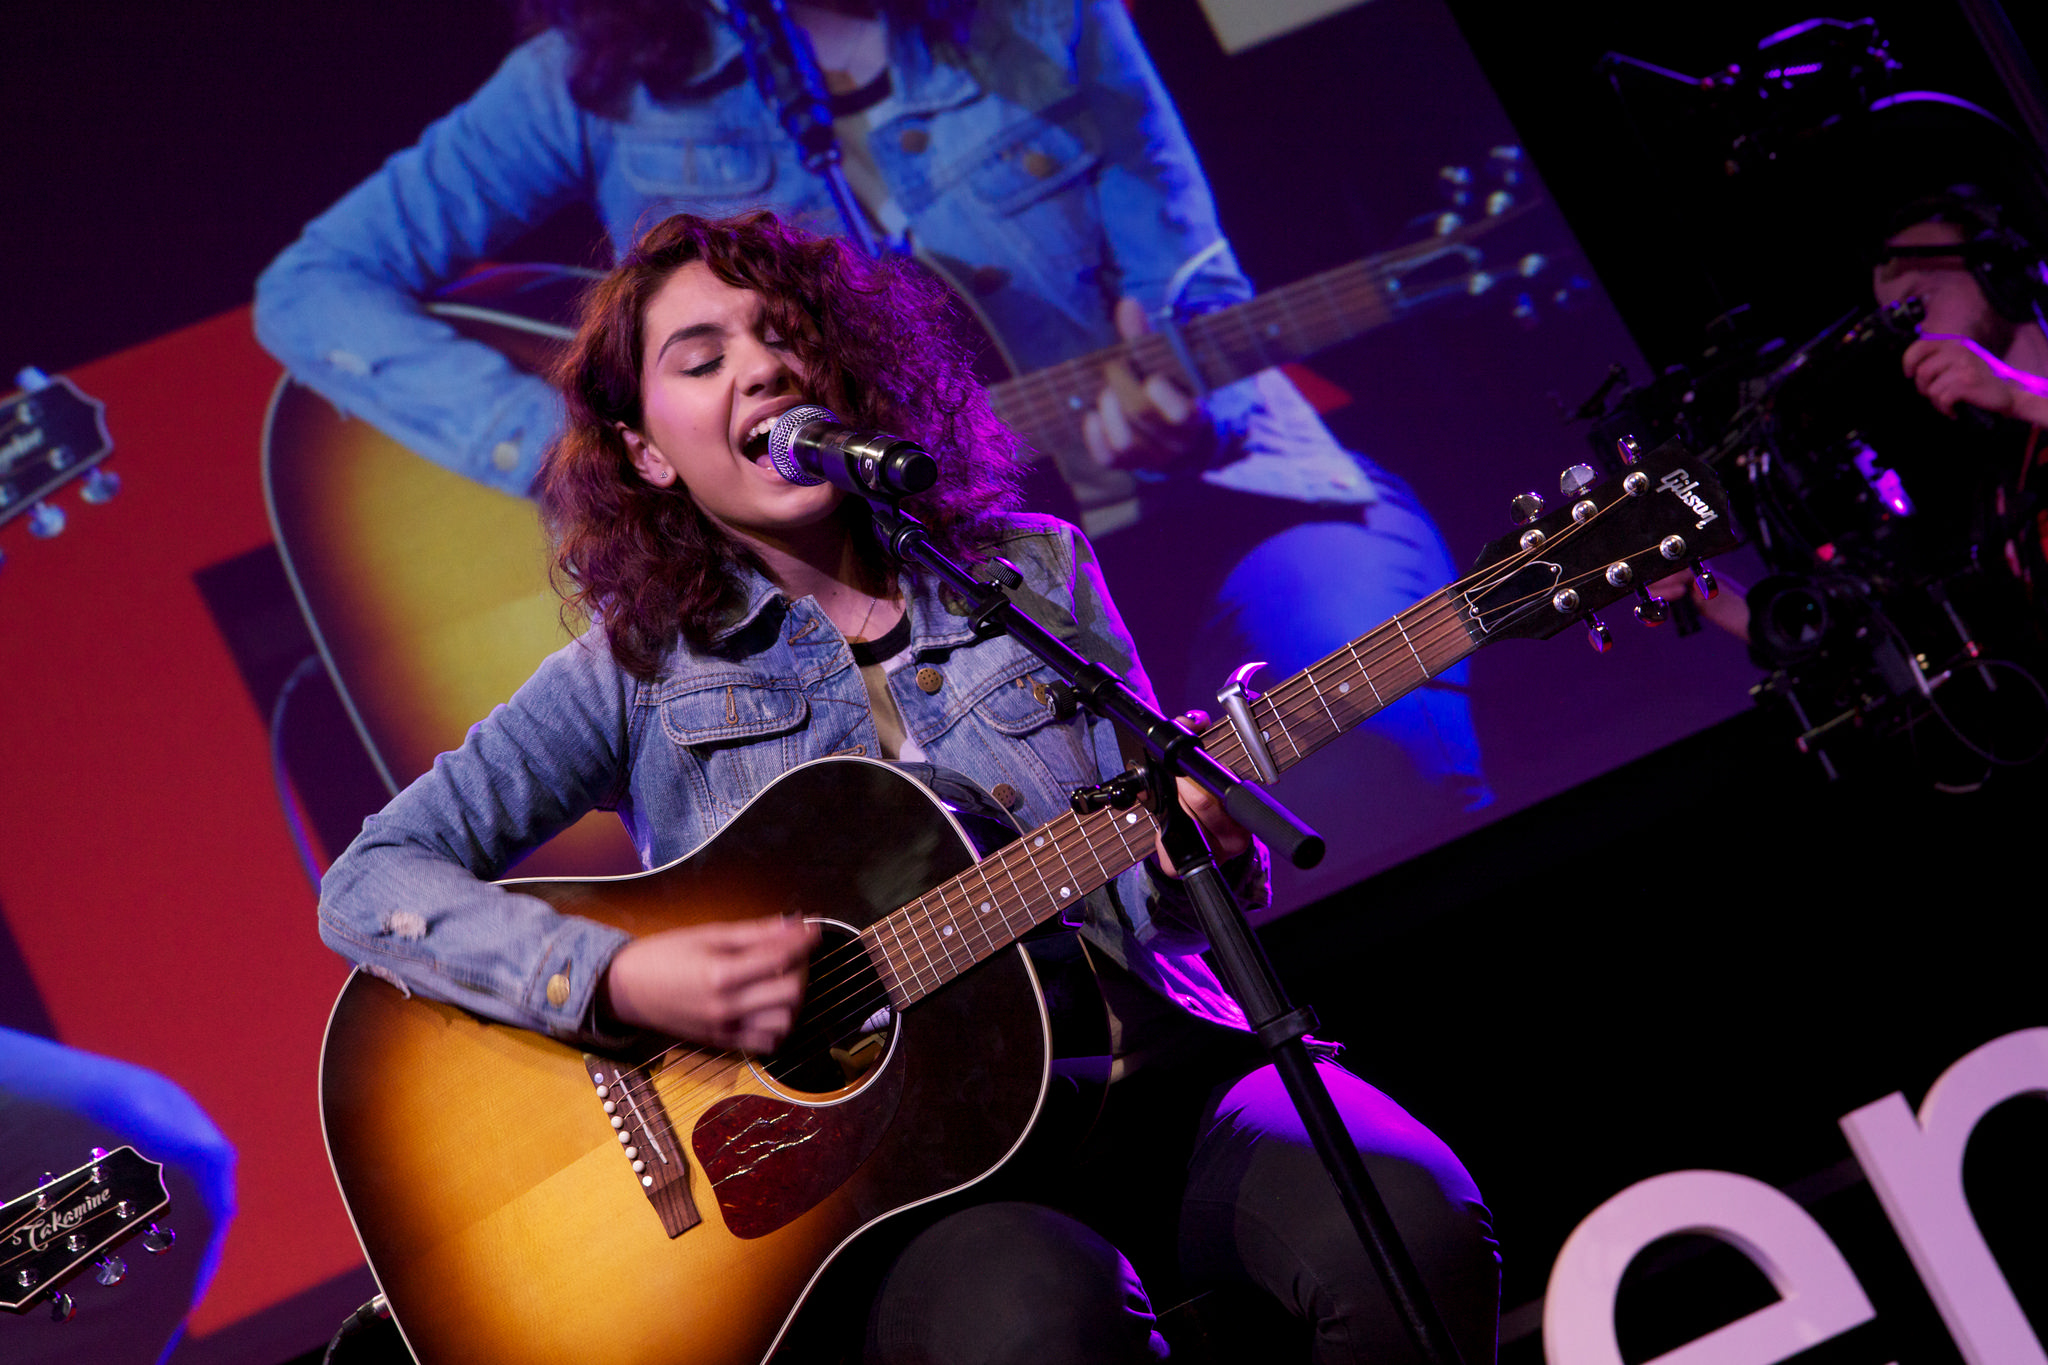 """YouTube star Alessia Cara performed her song, """"Here,"""" to great applause. Photo: Courtesy of TEDxTeen"""